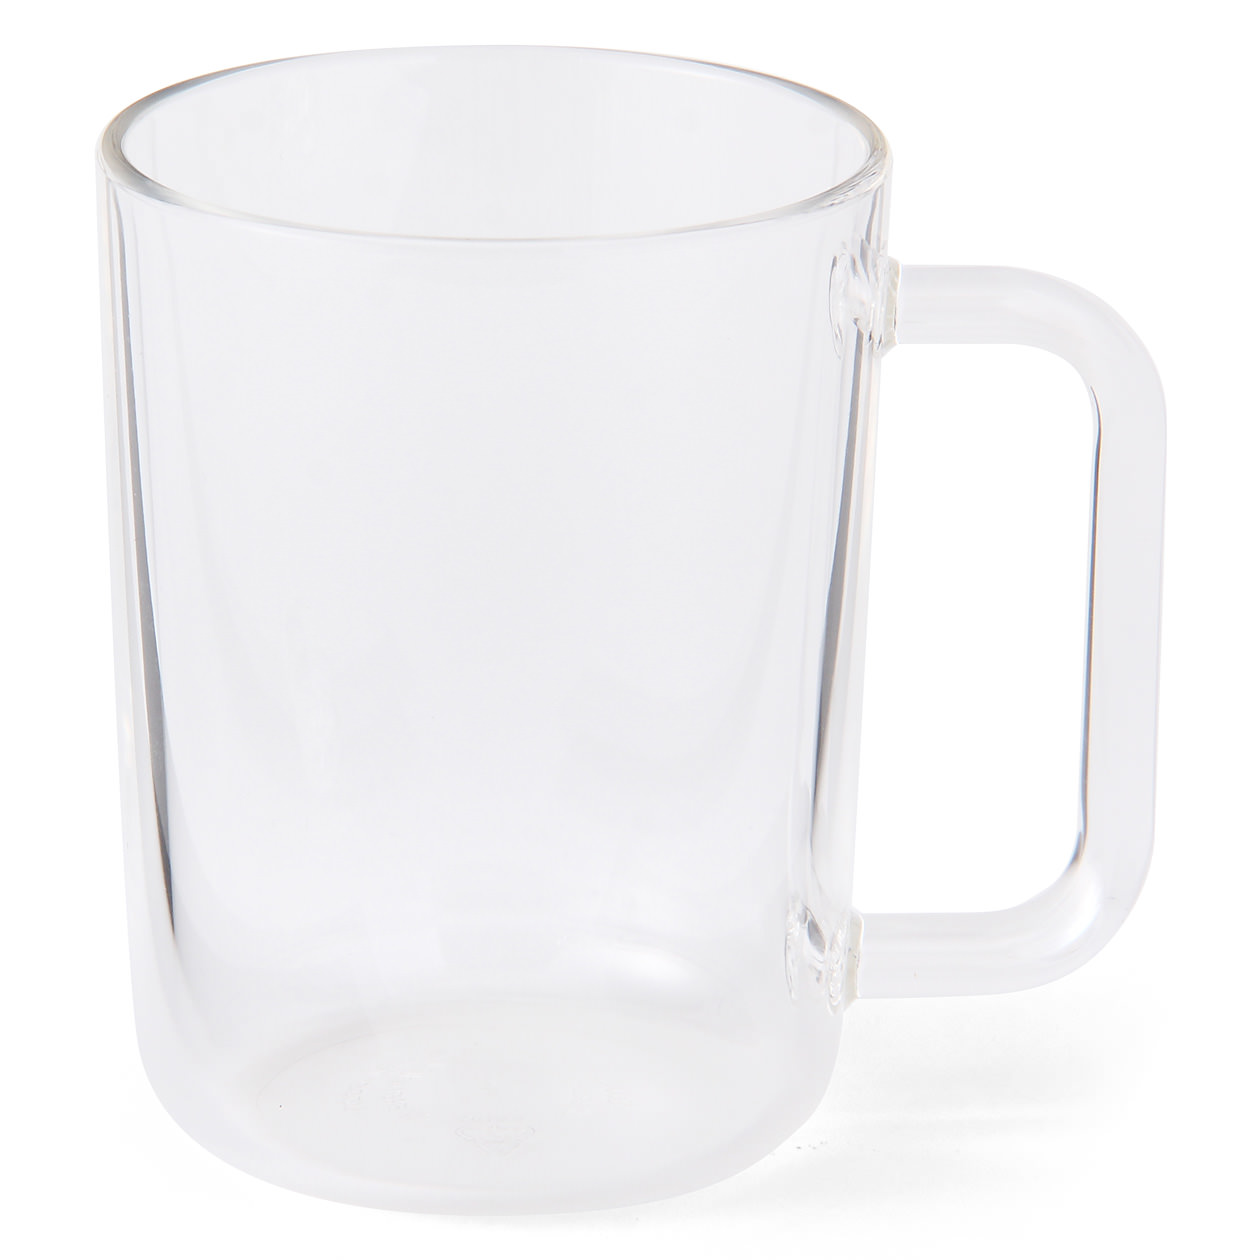 ACRYLIC CUP WITH HANDLE